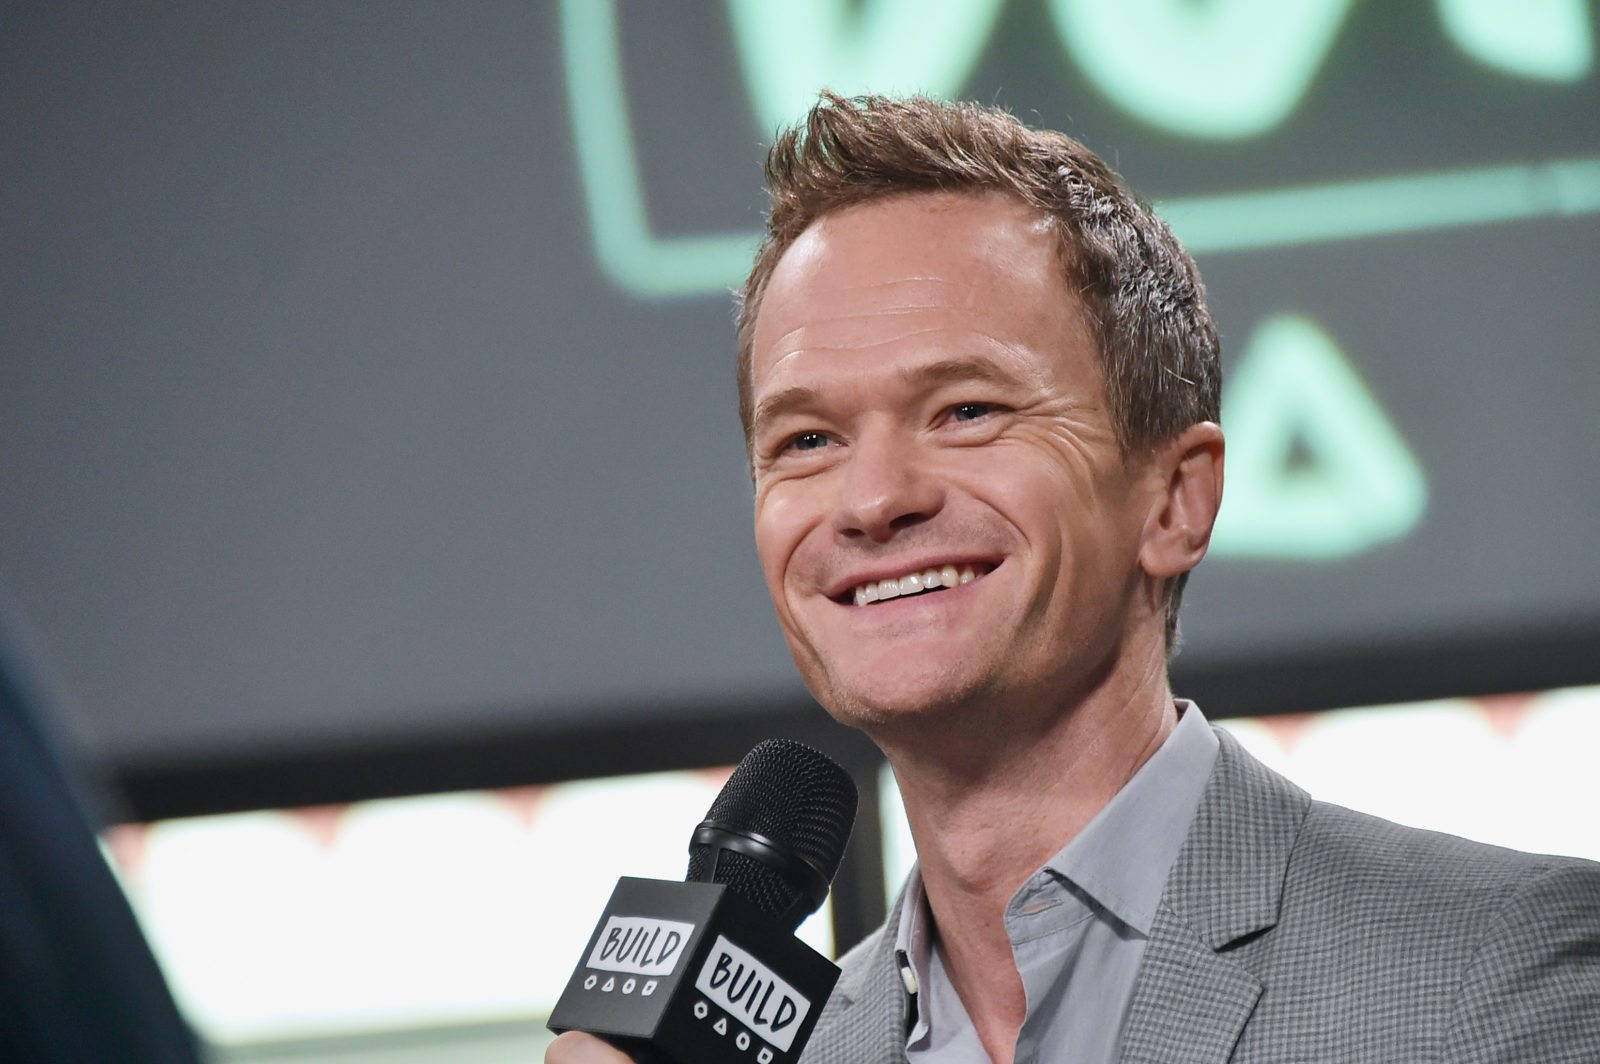 NEW YORK, NY - JANUARY 13: Actor Neil Patrick Harris attends the Build series to discuss the Netflix drama 'Lemony Snicket's a Series Of Unfortunate Events' at Build Studio on January 13, 2017 in New York City. (Photo by Mike Coppola/Getty Images)